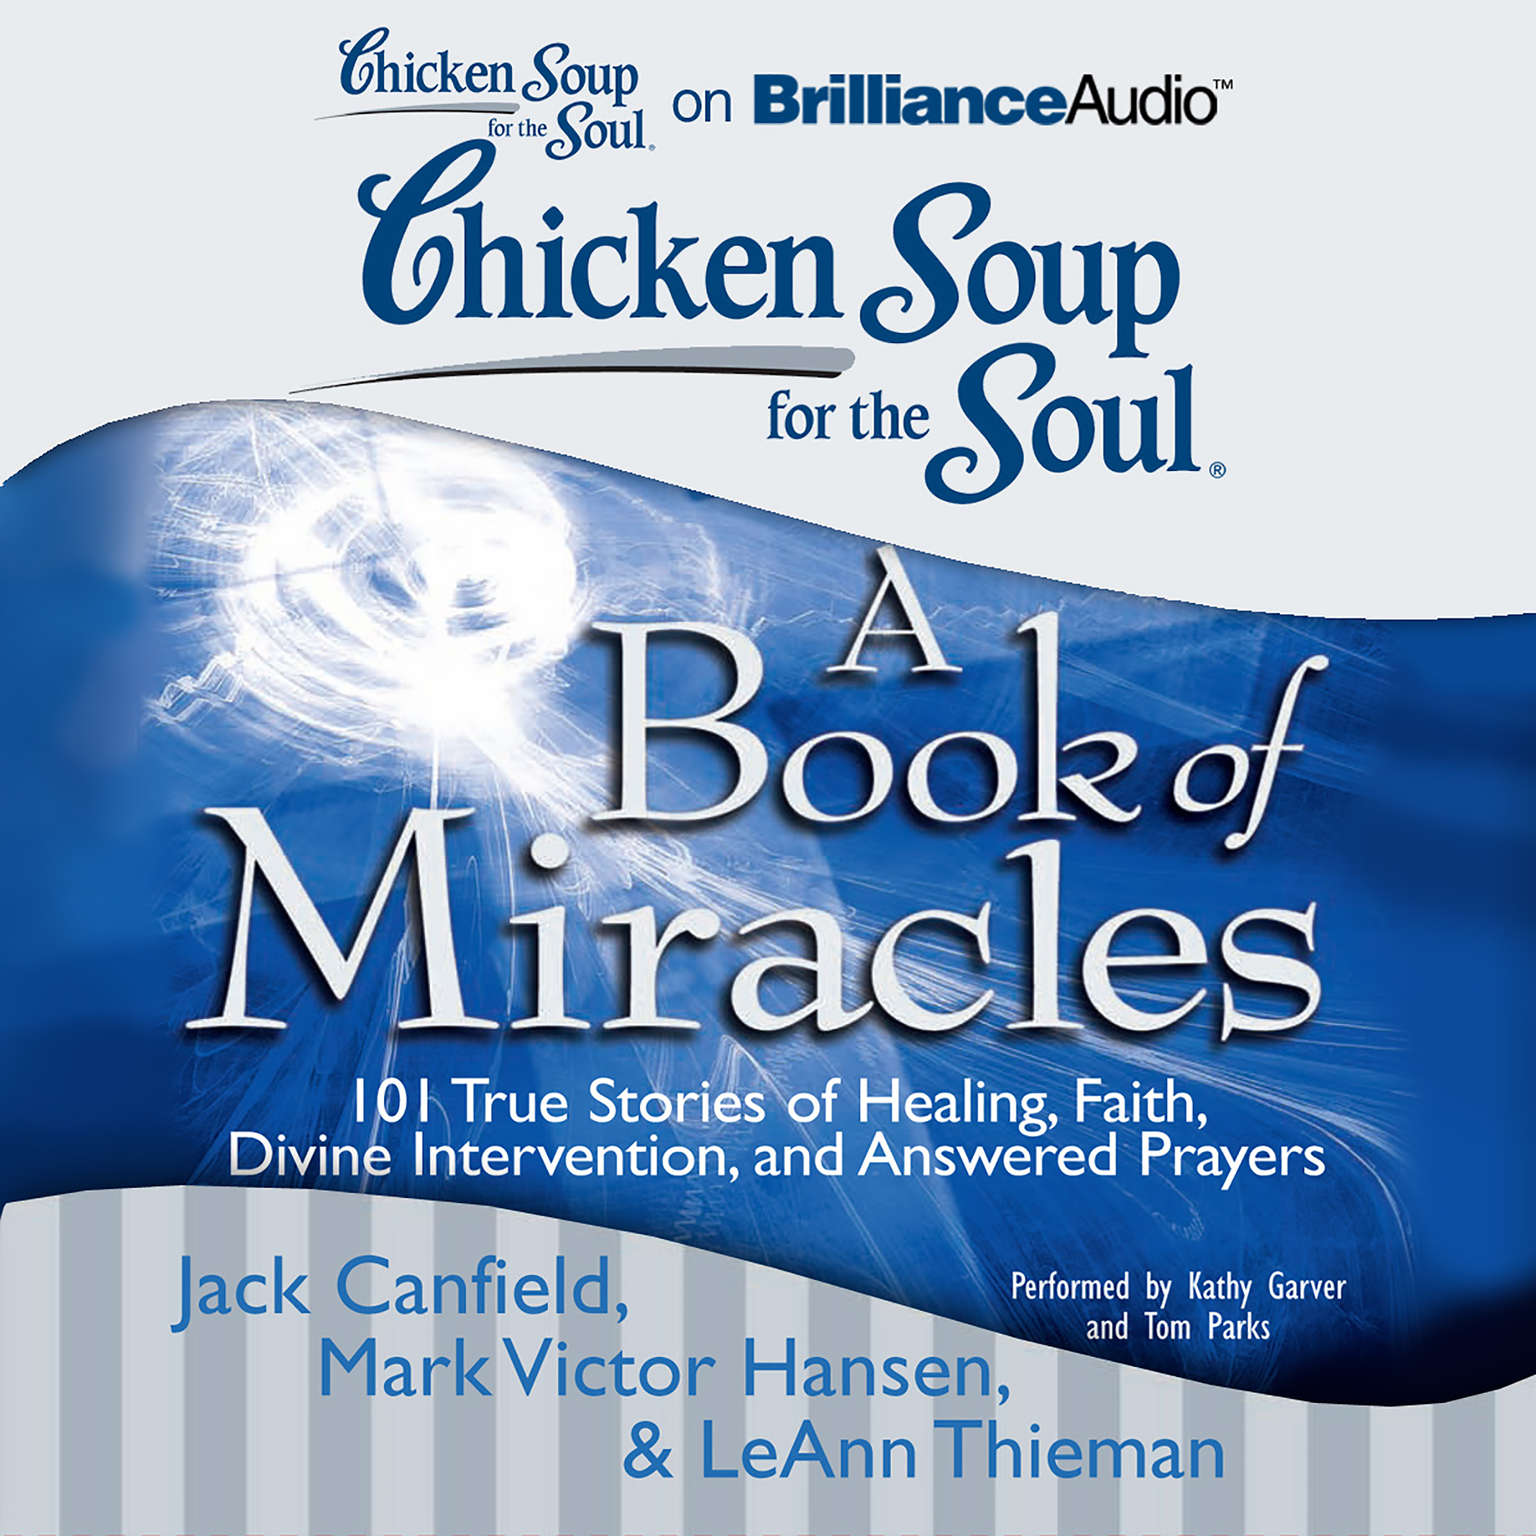 Printable Chicken Soup for the Soul: A Book of Miracles: 101 True Stories of Healing, Faith, Divine Intervention, and Answered Prayers Audiobook Cover Art